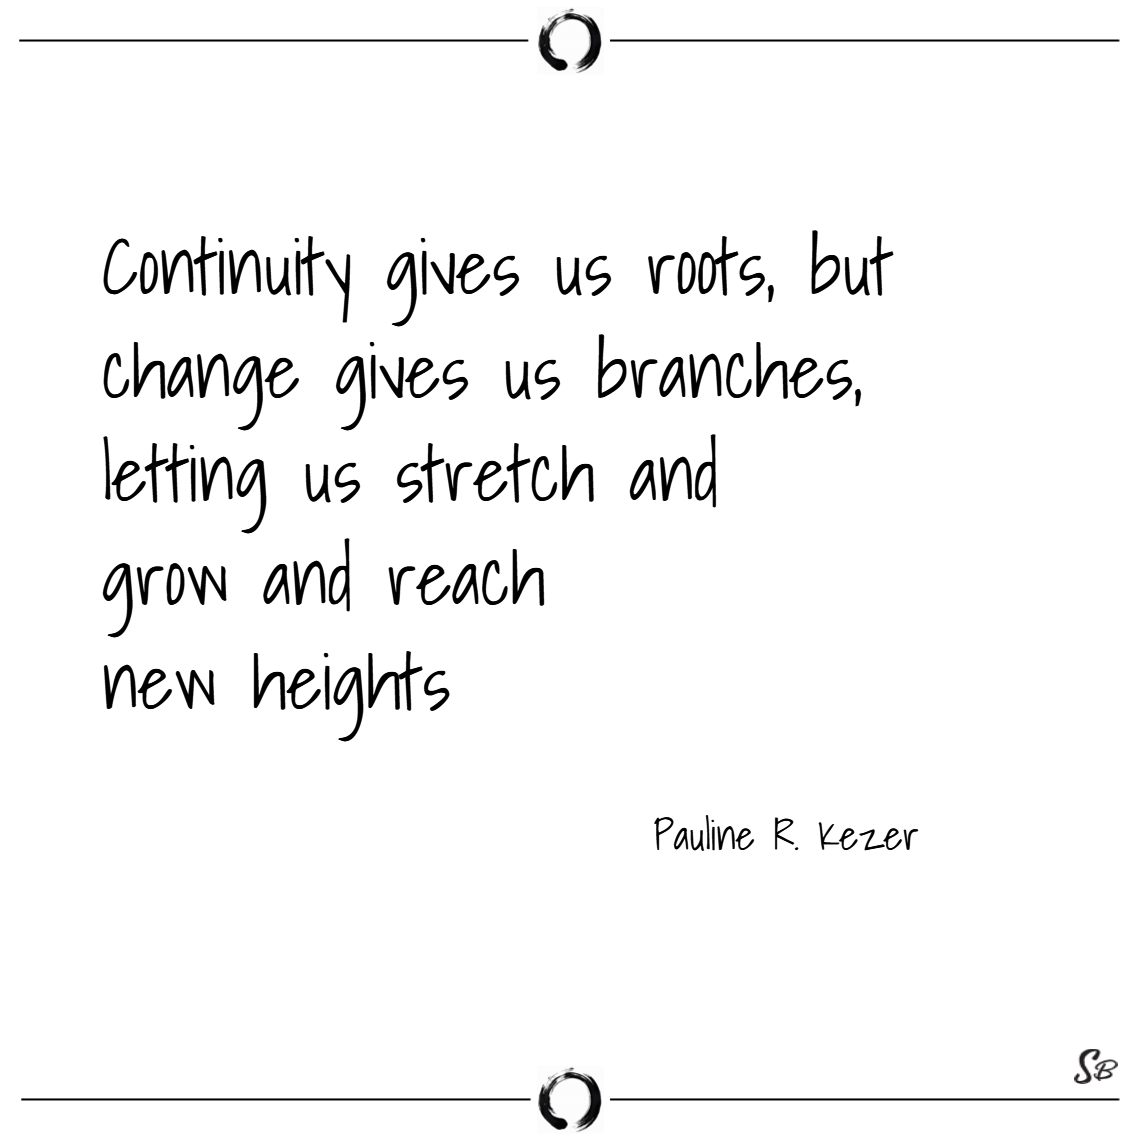 Continuity-gives-us-roots-but-change-gives-us-branches-letting-us-stretch-and-grow-and-reach-n...png